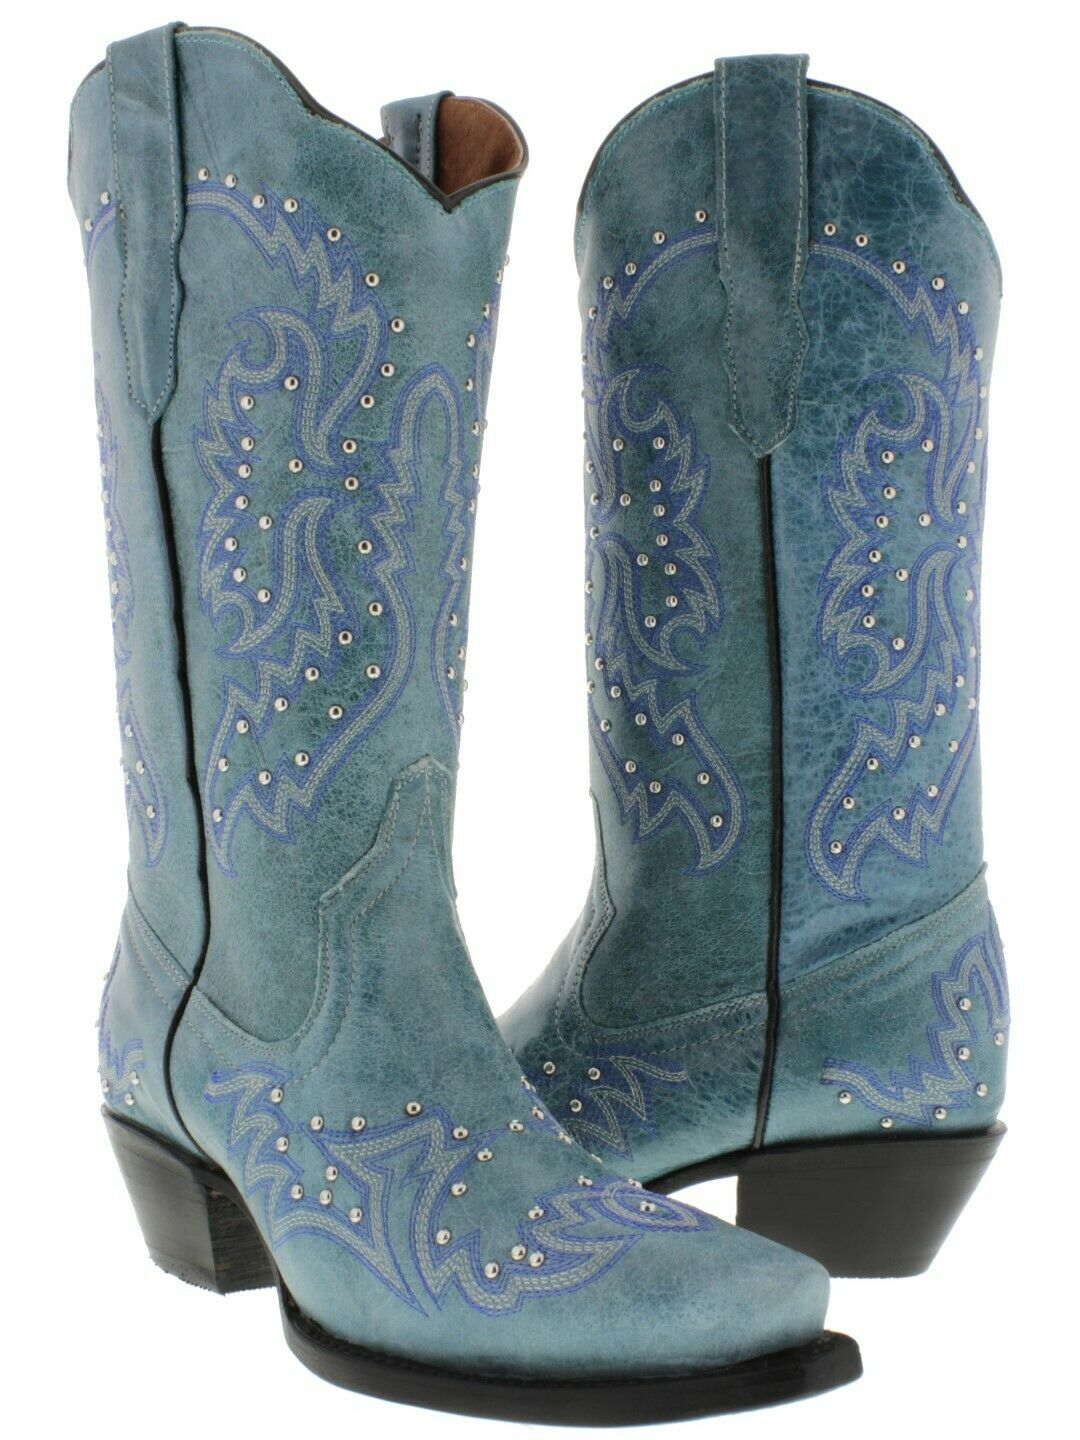 Womens Turquoise Western Cowgirl Boots Silver Studs Embroidery Snip Toe